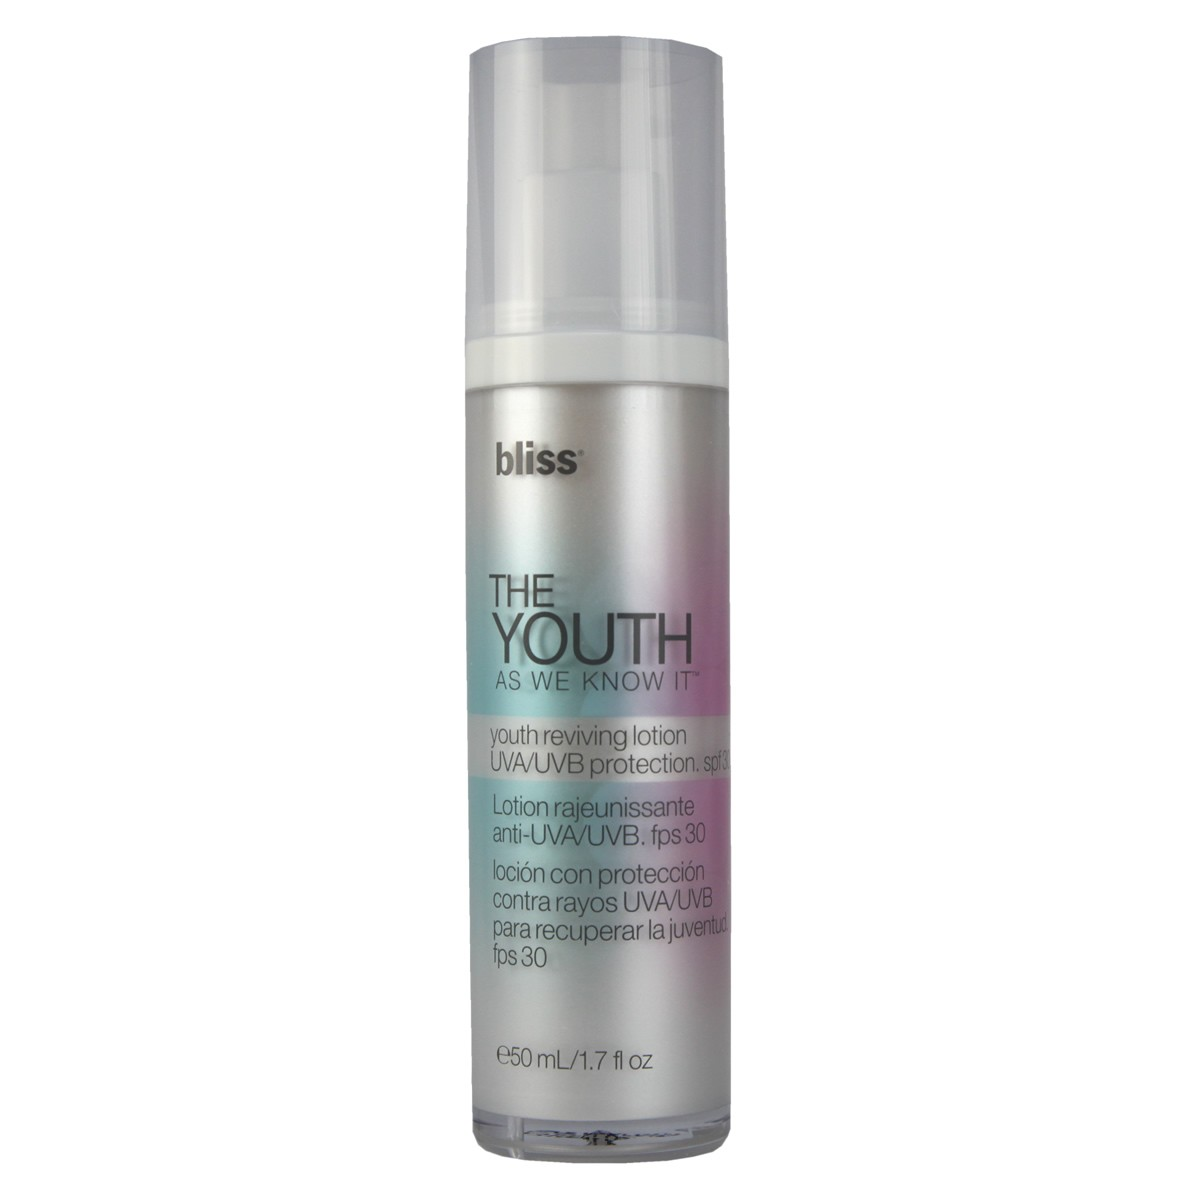 Bliss THE	YOUTH AS WE KNOW IT Anti-Aging Moisture Lotion spf 30